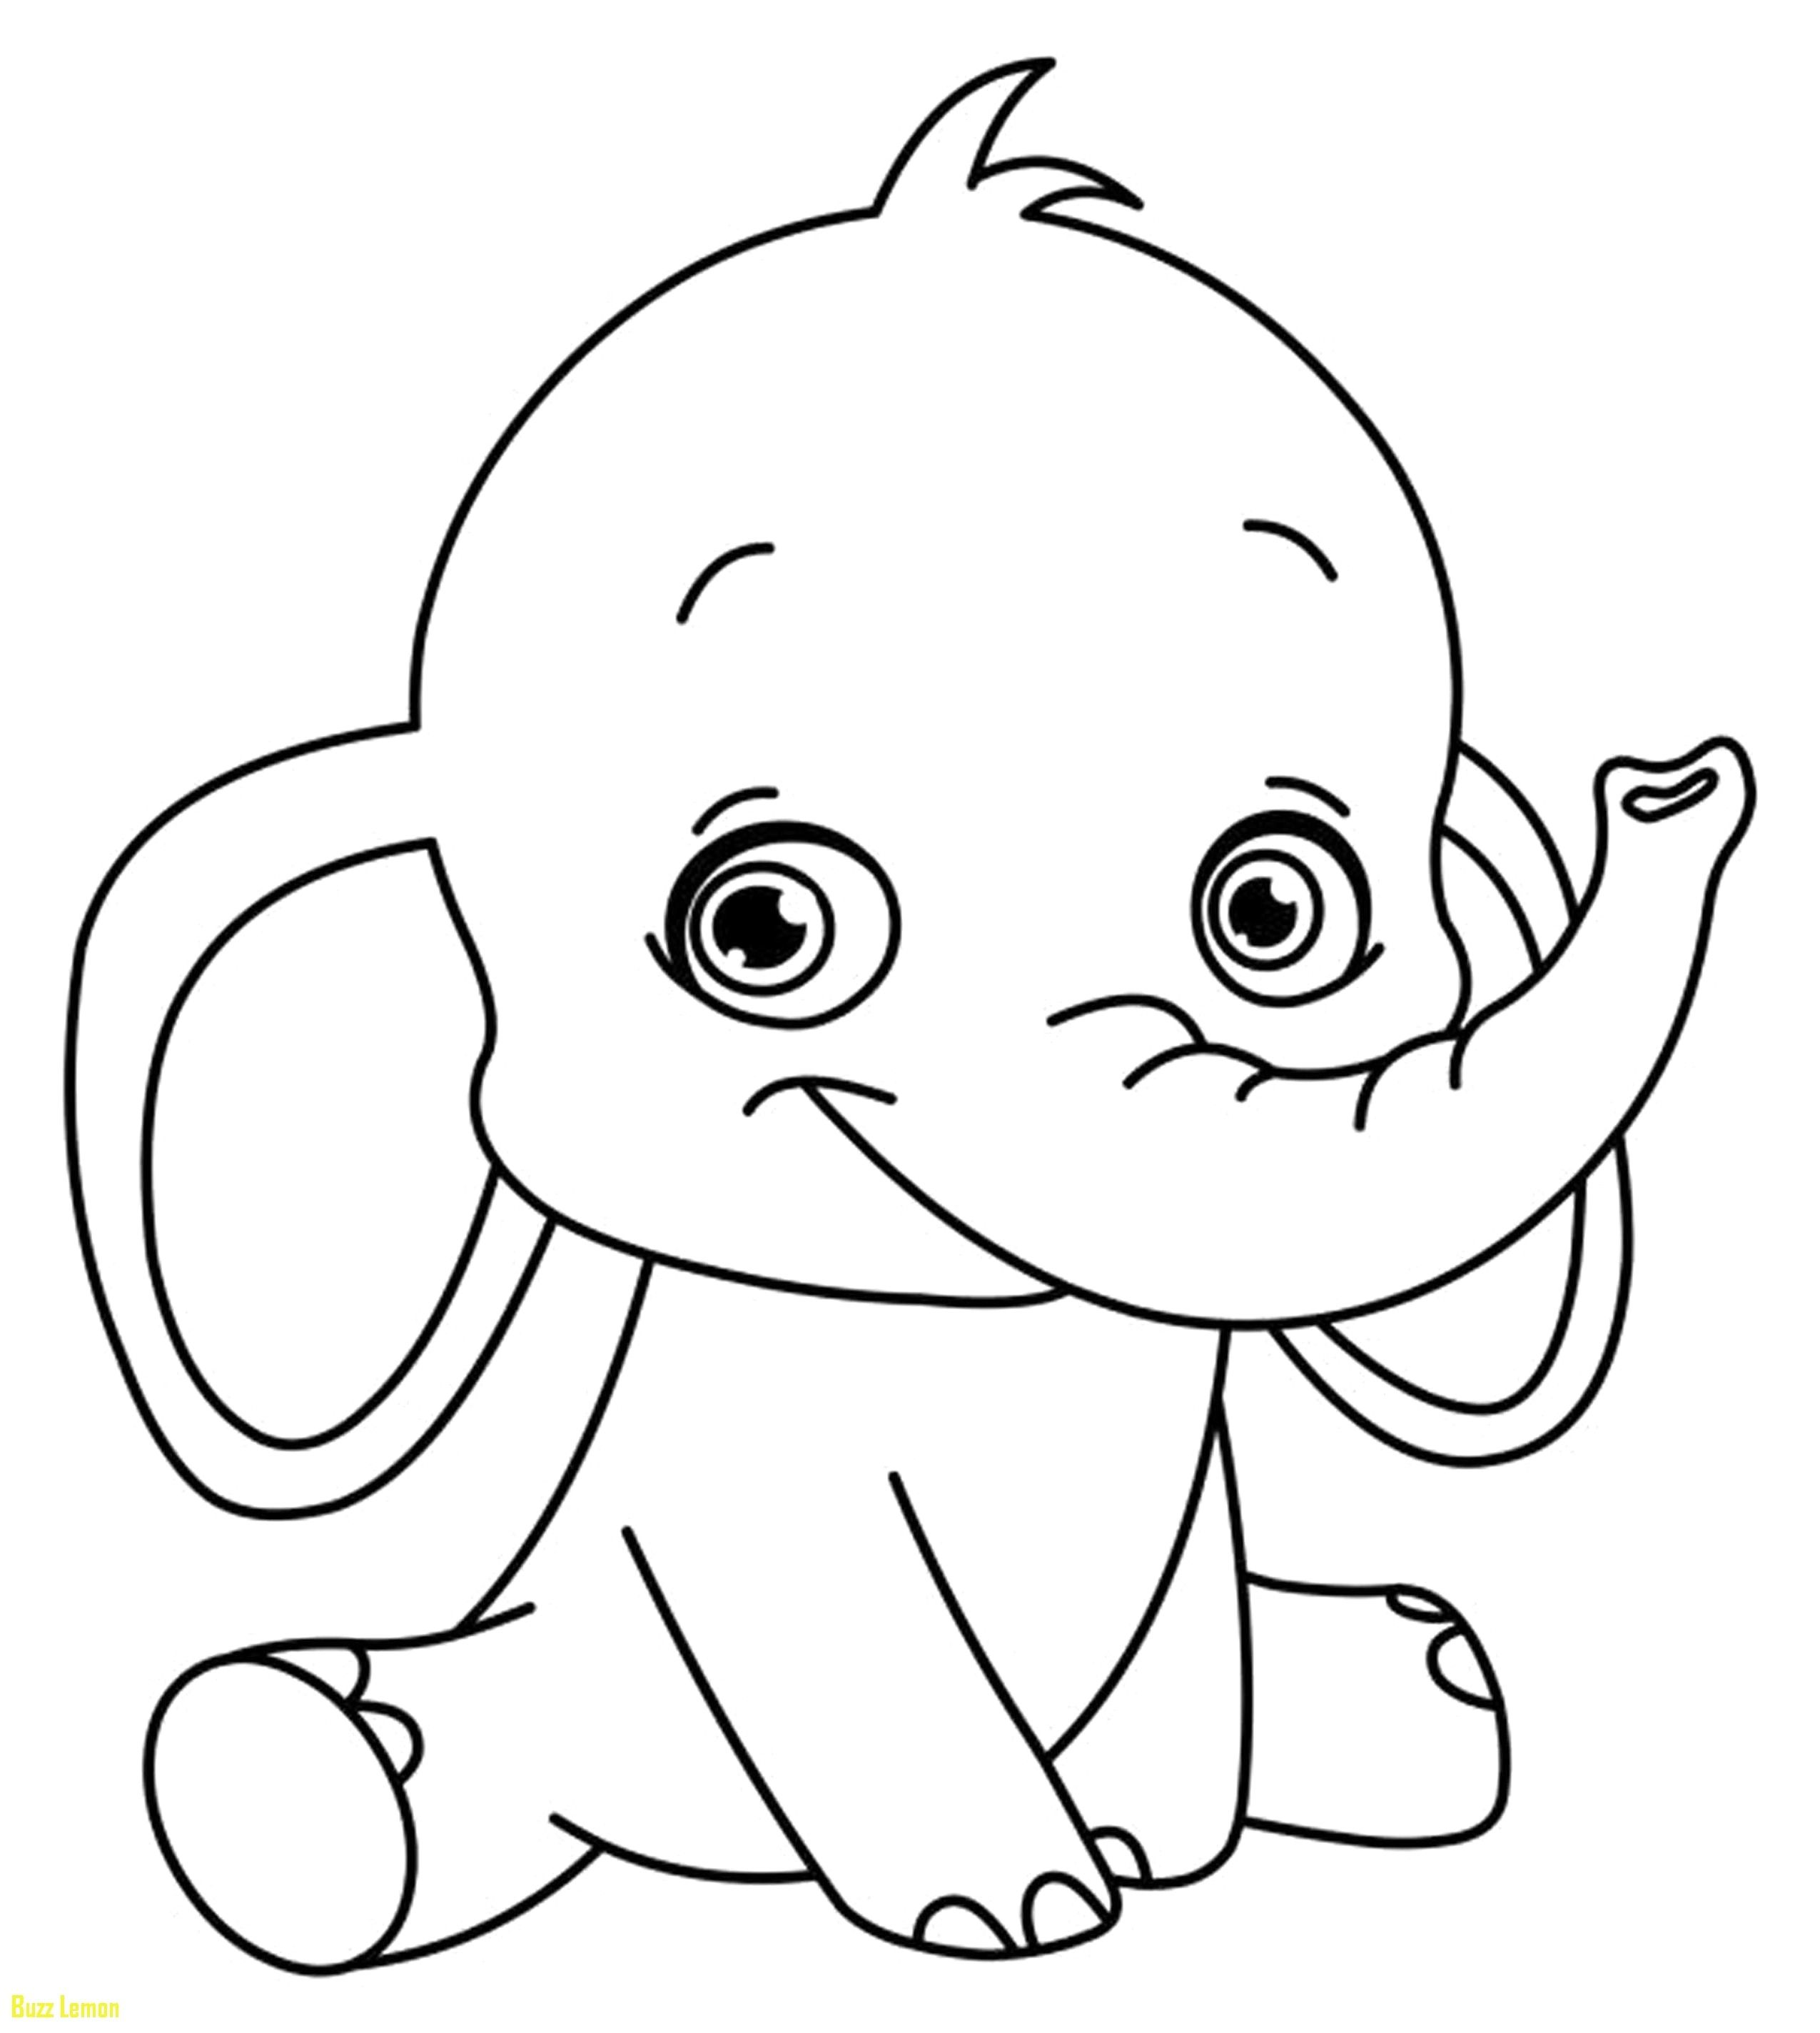 Big And Easy Elephant Coloring Pages Free Coloring Pages Printable Coloring Pages Elephant Coloring Page Kids Printable Coloring Pages Easy Coloring Pages